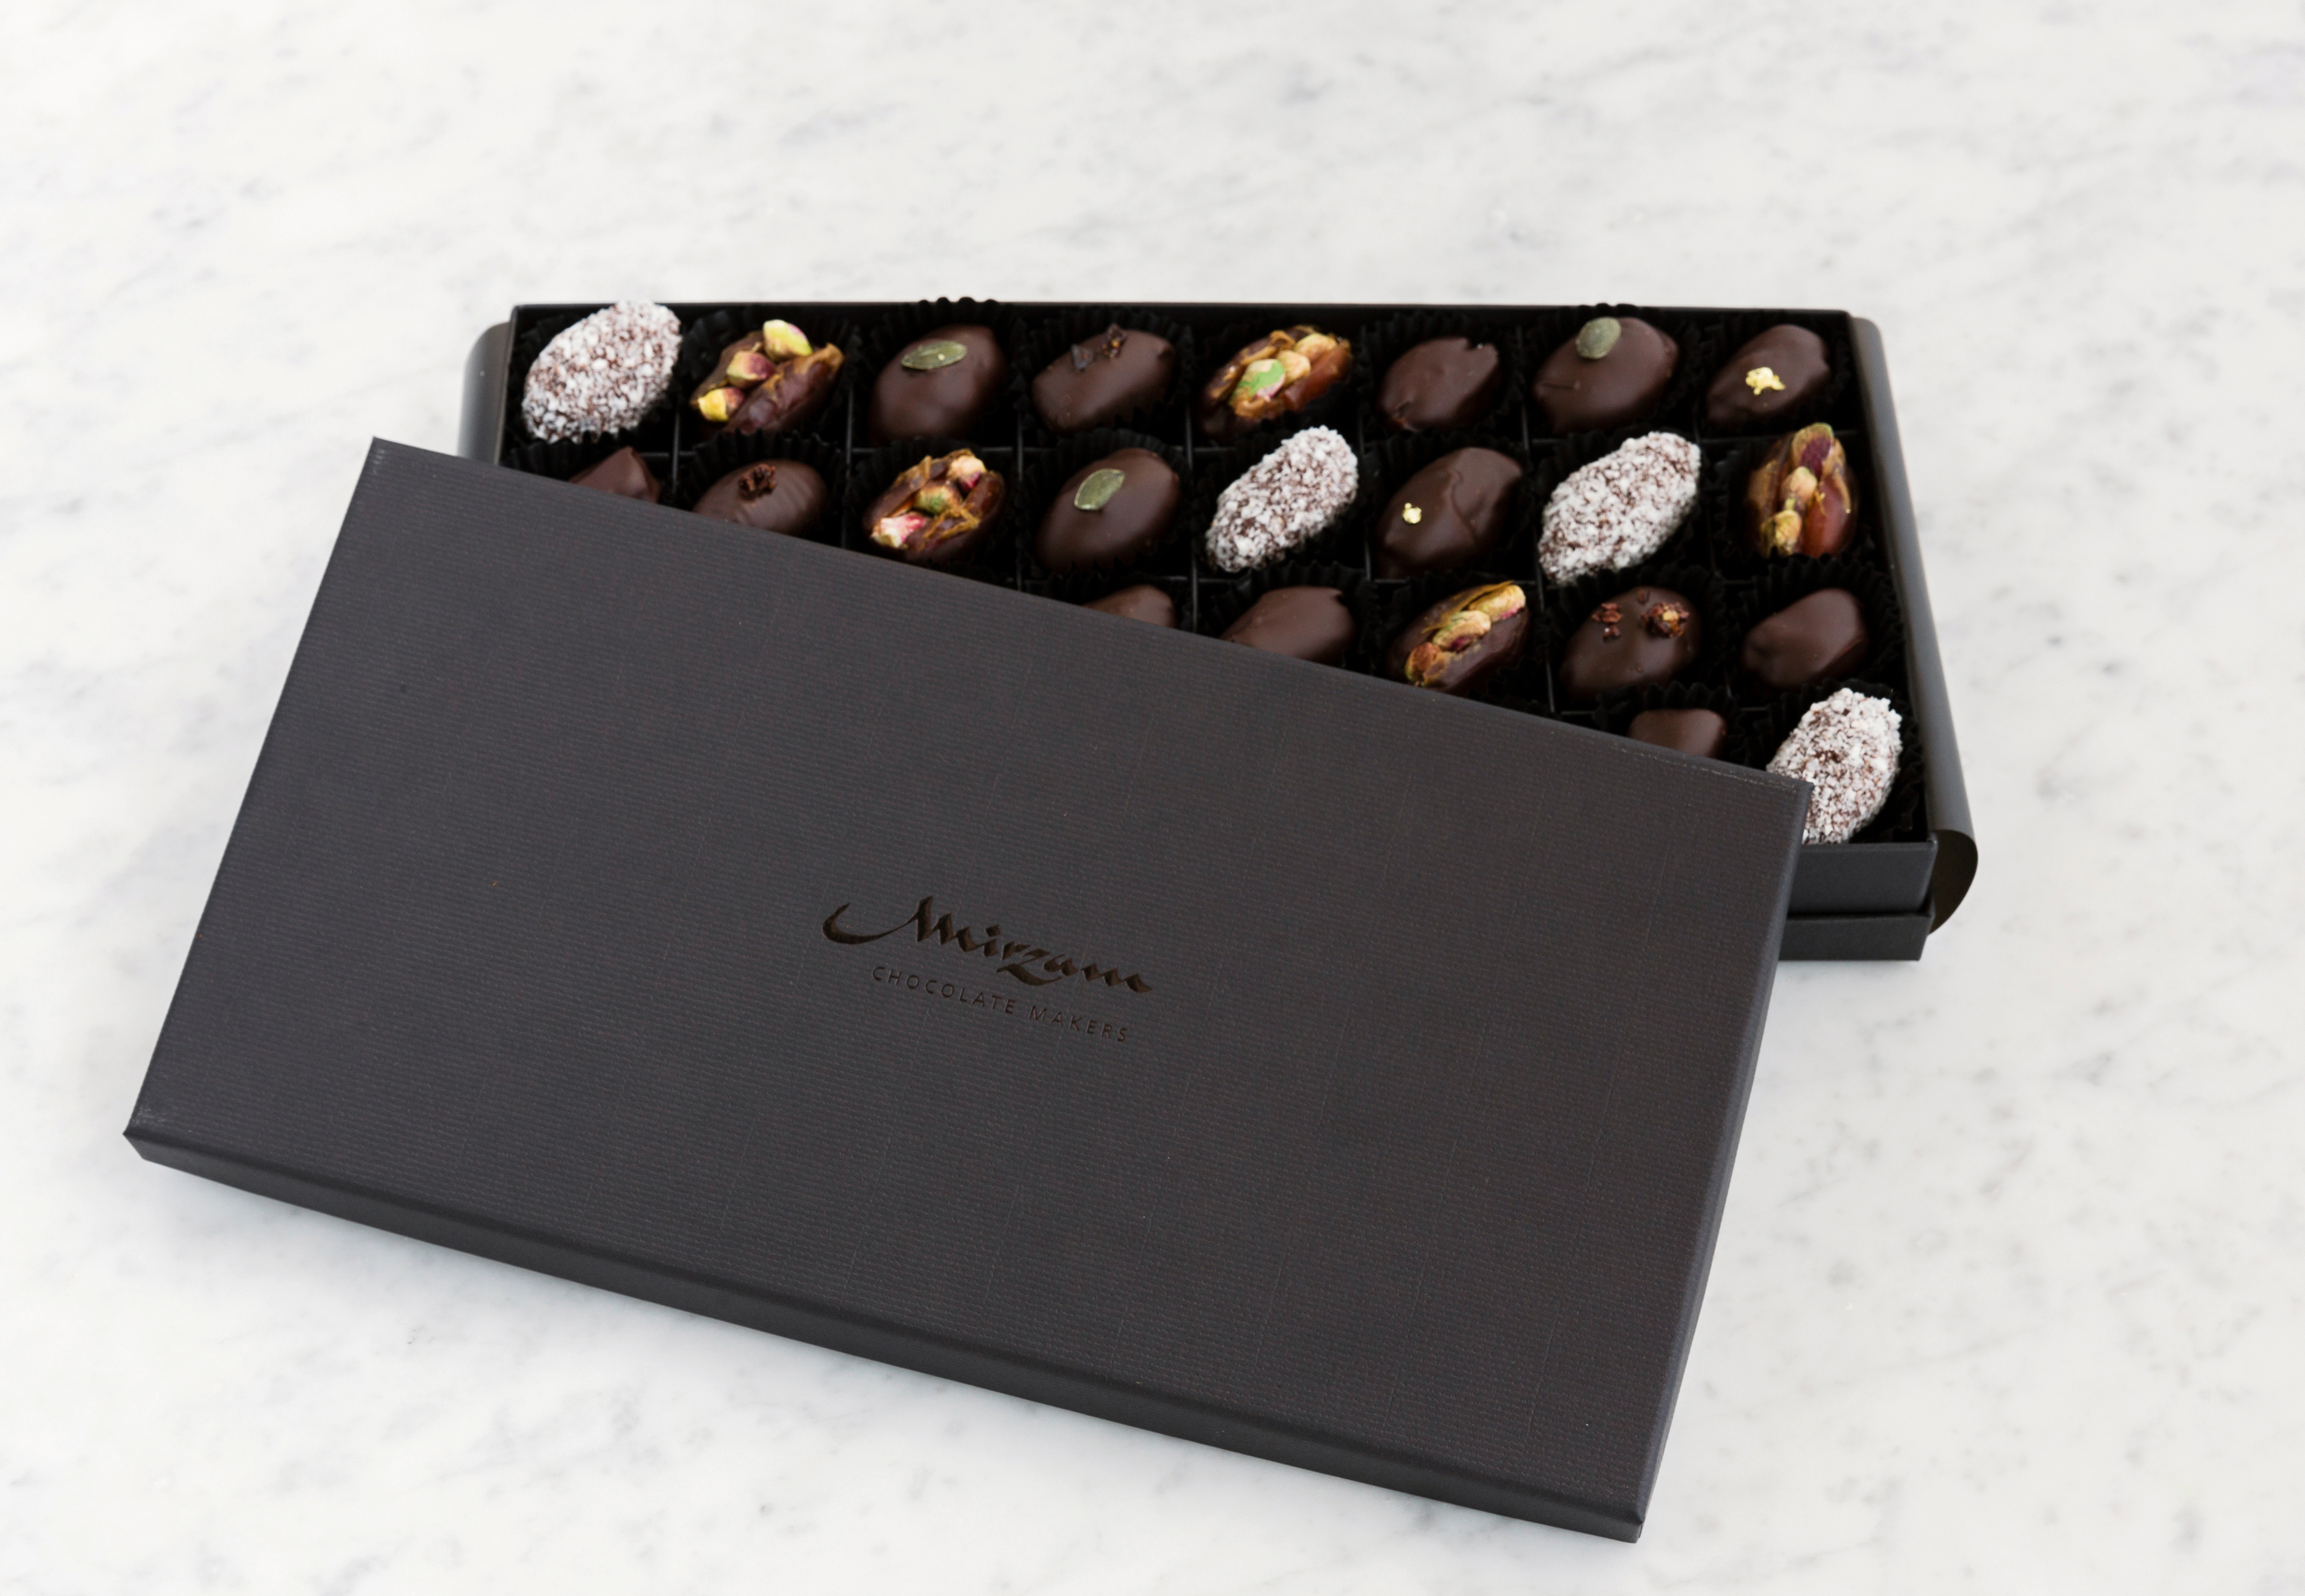 Mirzam Launches Exclusive Vegan Collection of Chocolate Dates for Ramadan | The Luxe Diary